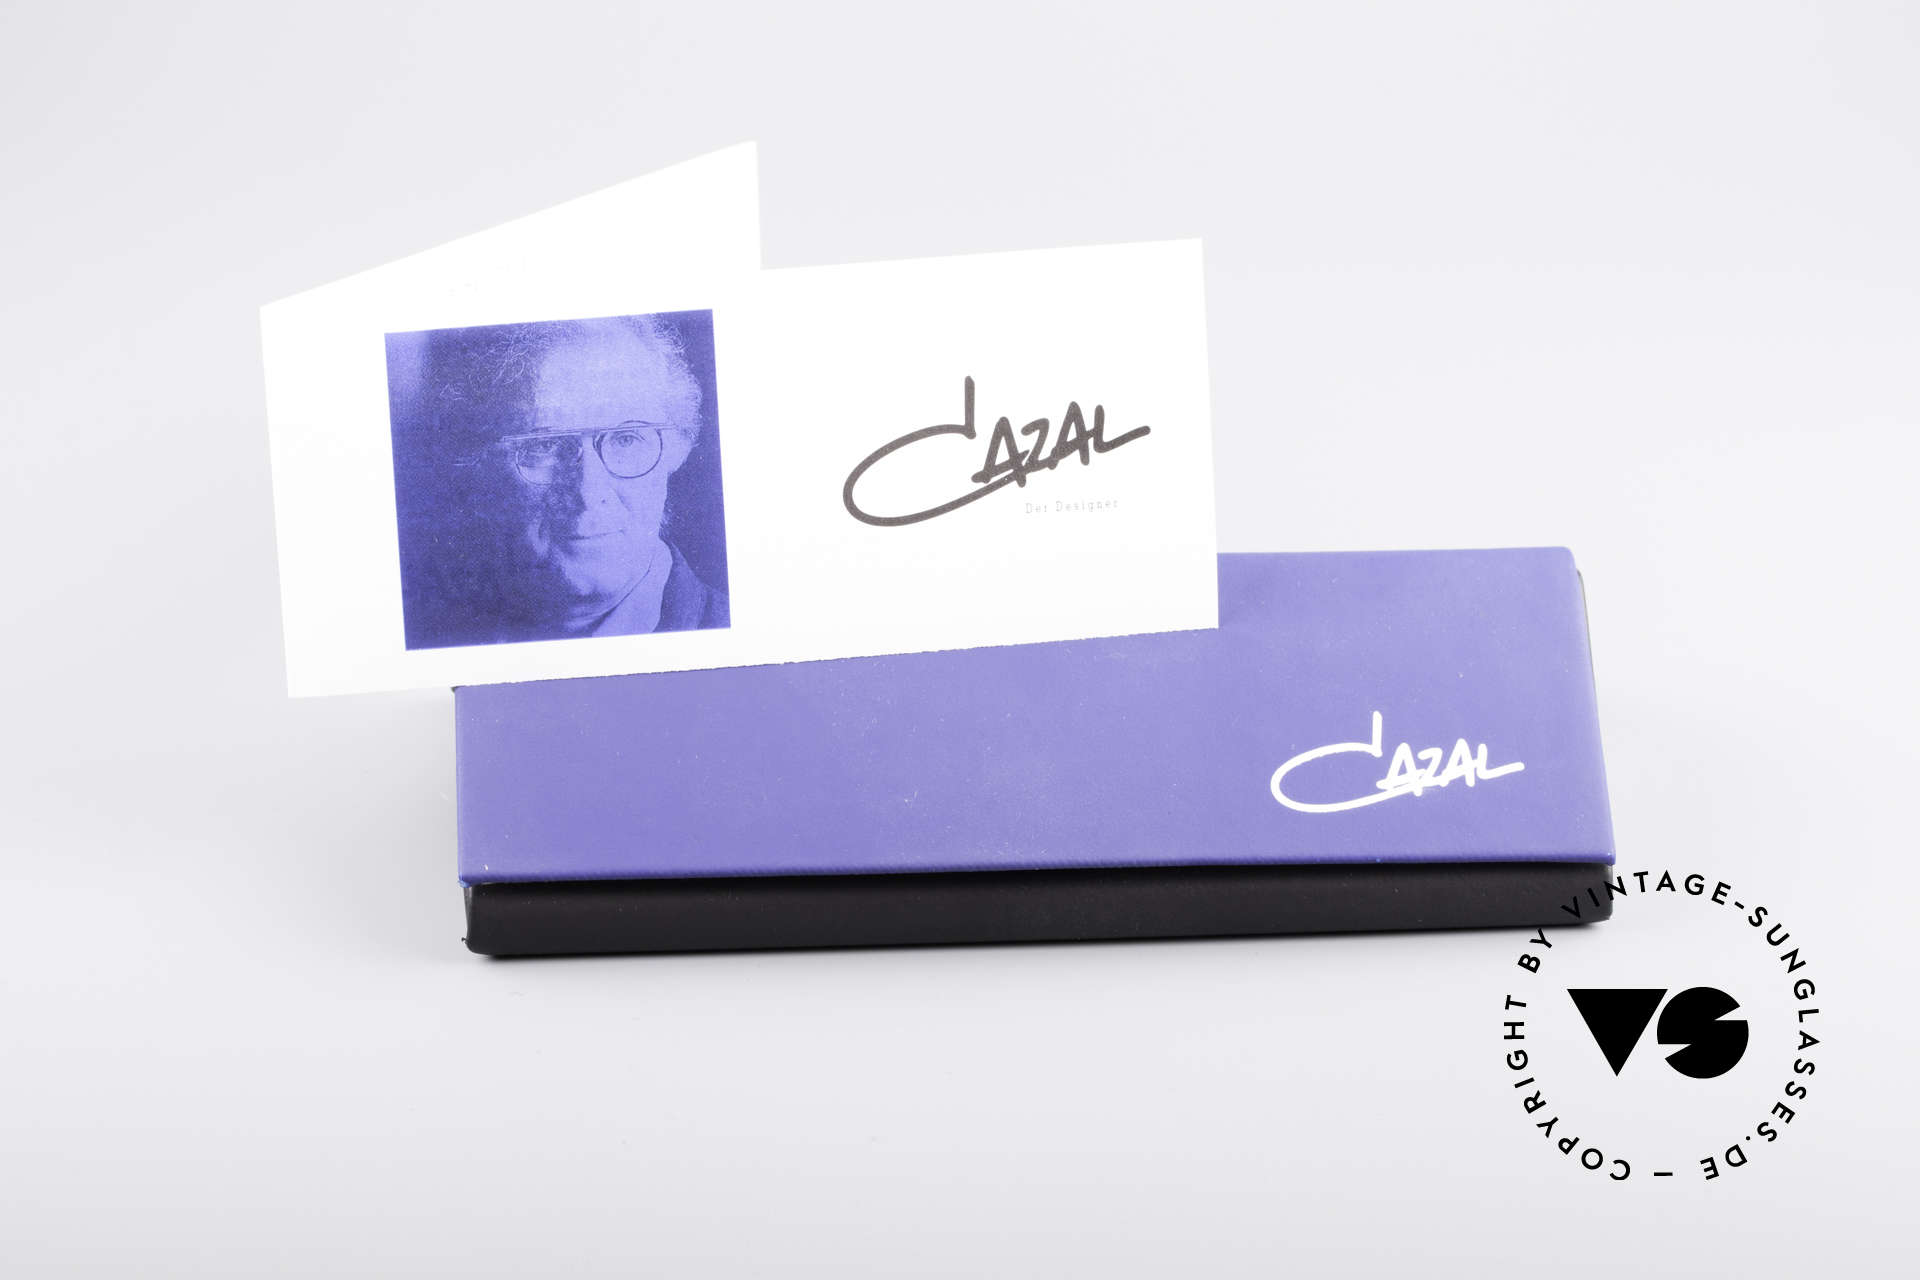 Cazal 764 True Vintage 90's Cazal Specs, NO retro eyeglasses, but a 20 years old original!, Made for Men